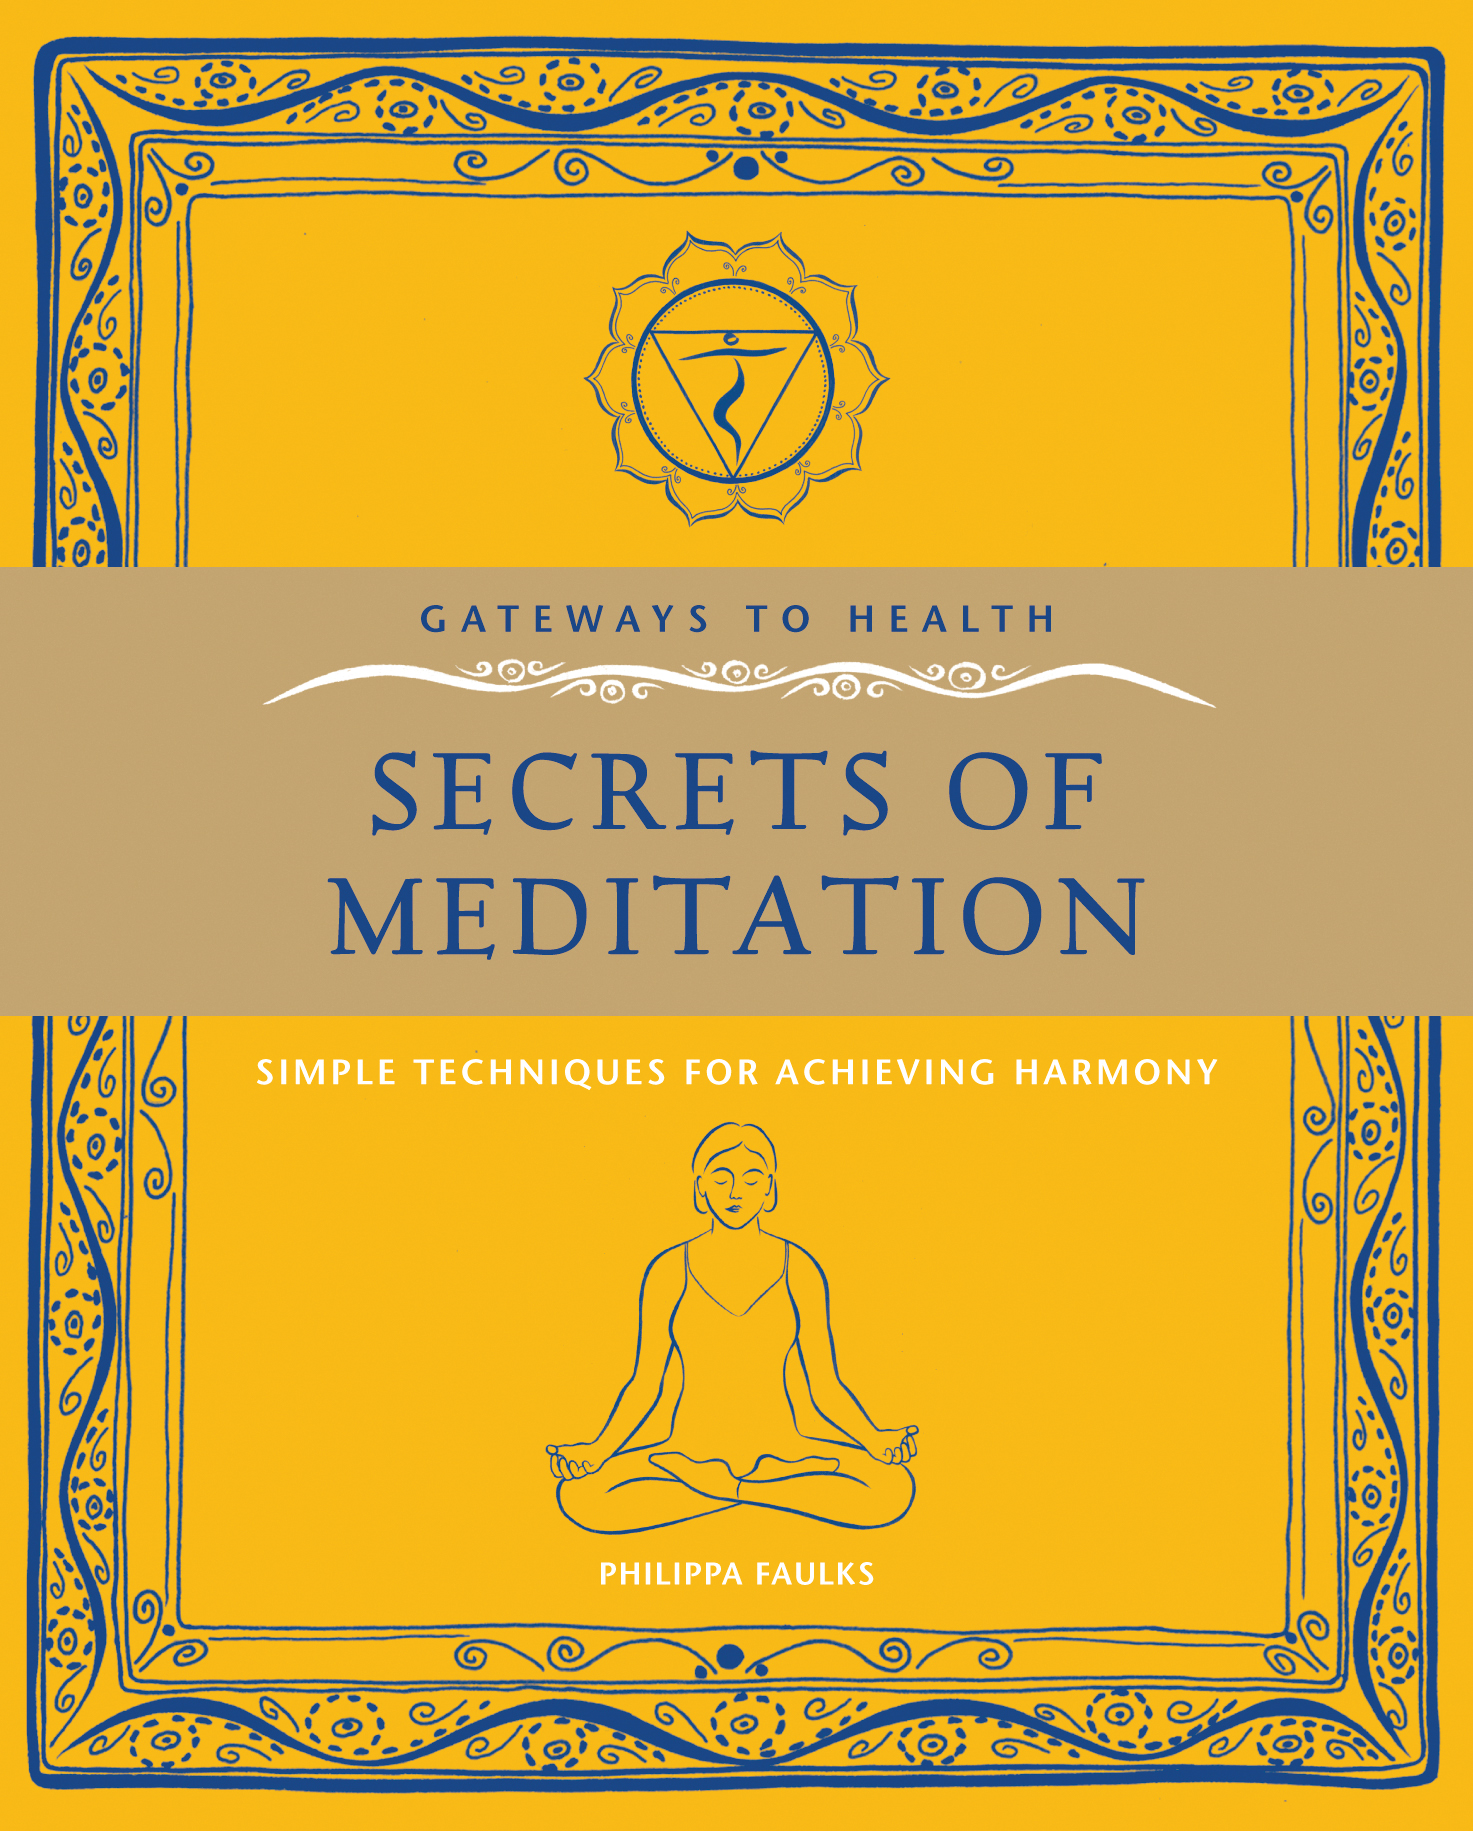 The Secrets of Meditation: Simple Techniques for Achieving Harmony